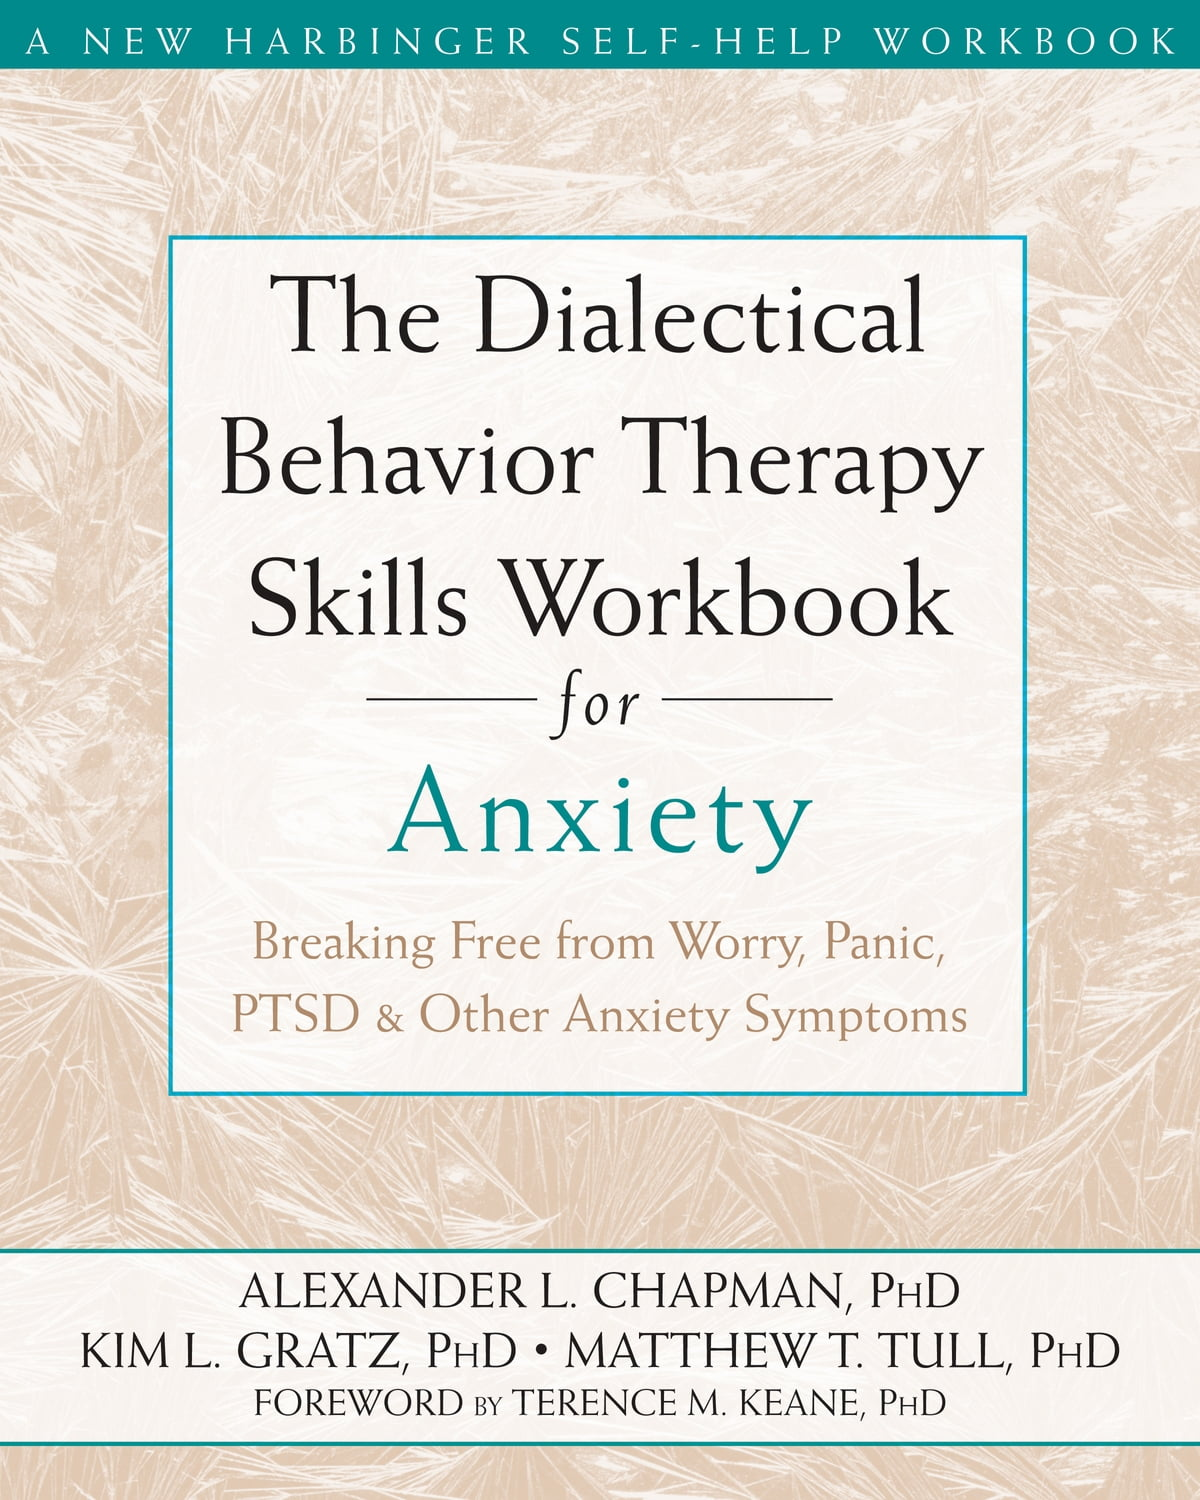 Workbooks dual diagnosis workbook free : The Dialectical Behavior Therapy Skills Workbook for Anxiety eBook ...